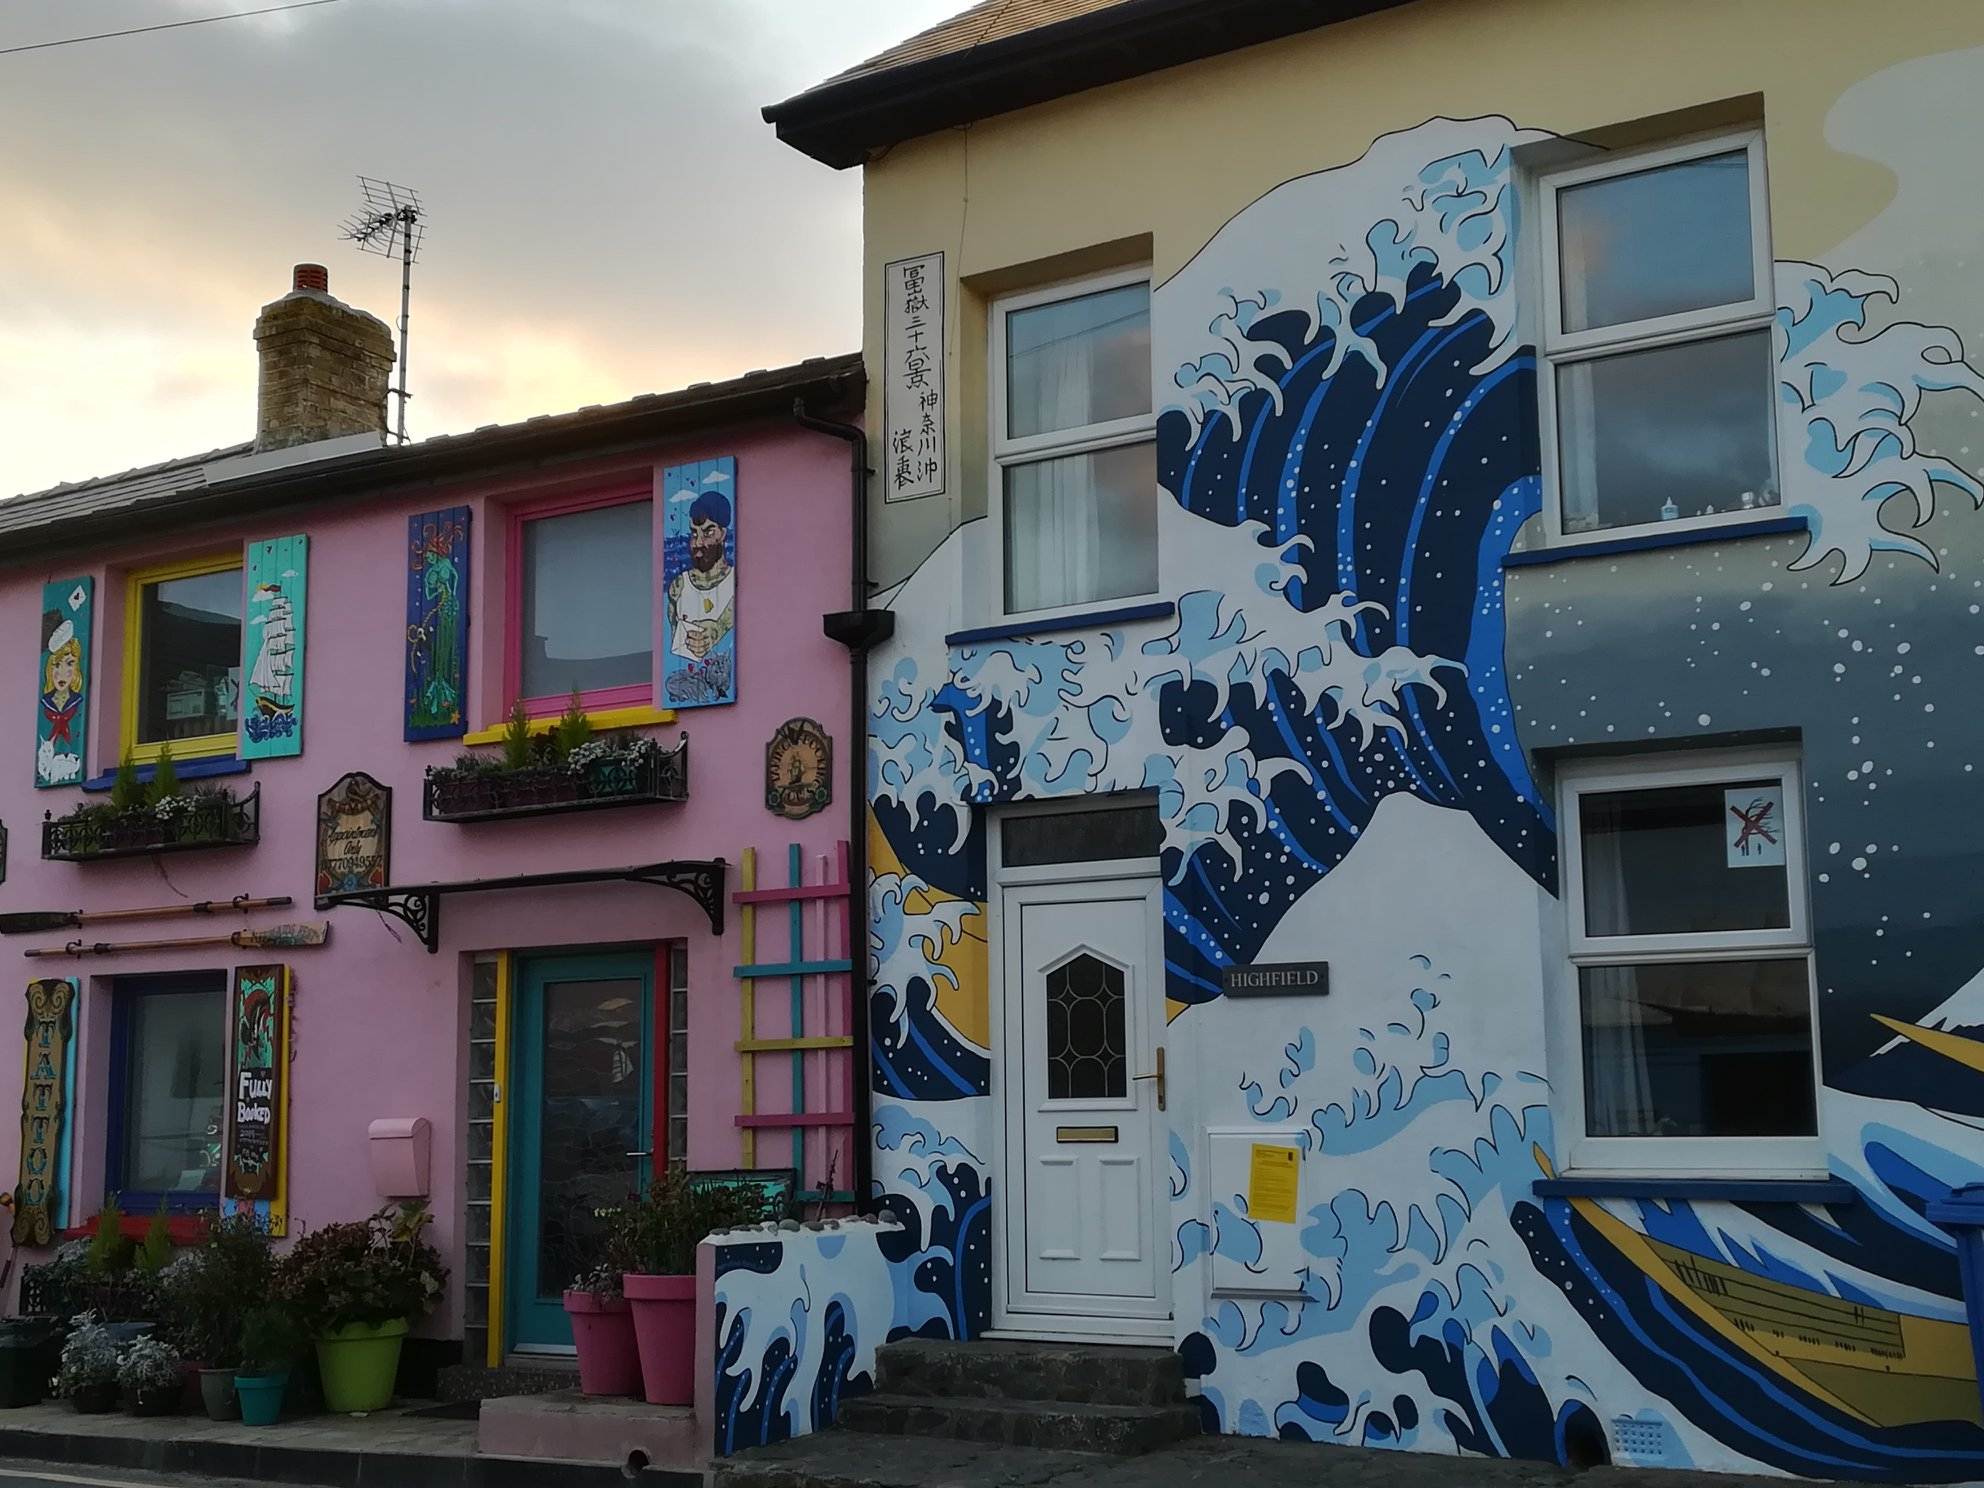 Borth - a place with painted houses